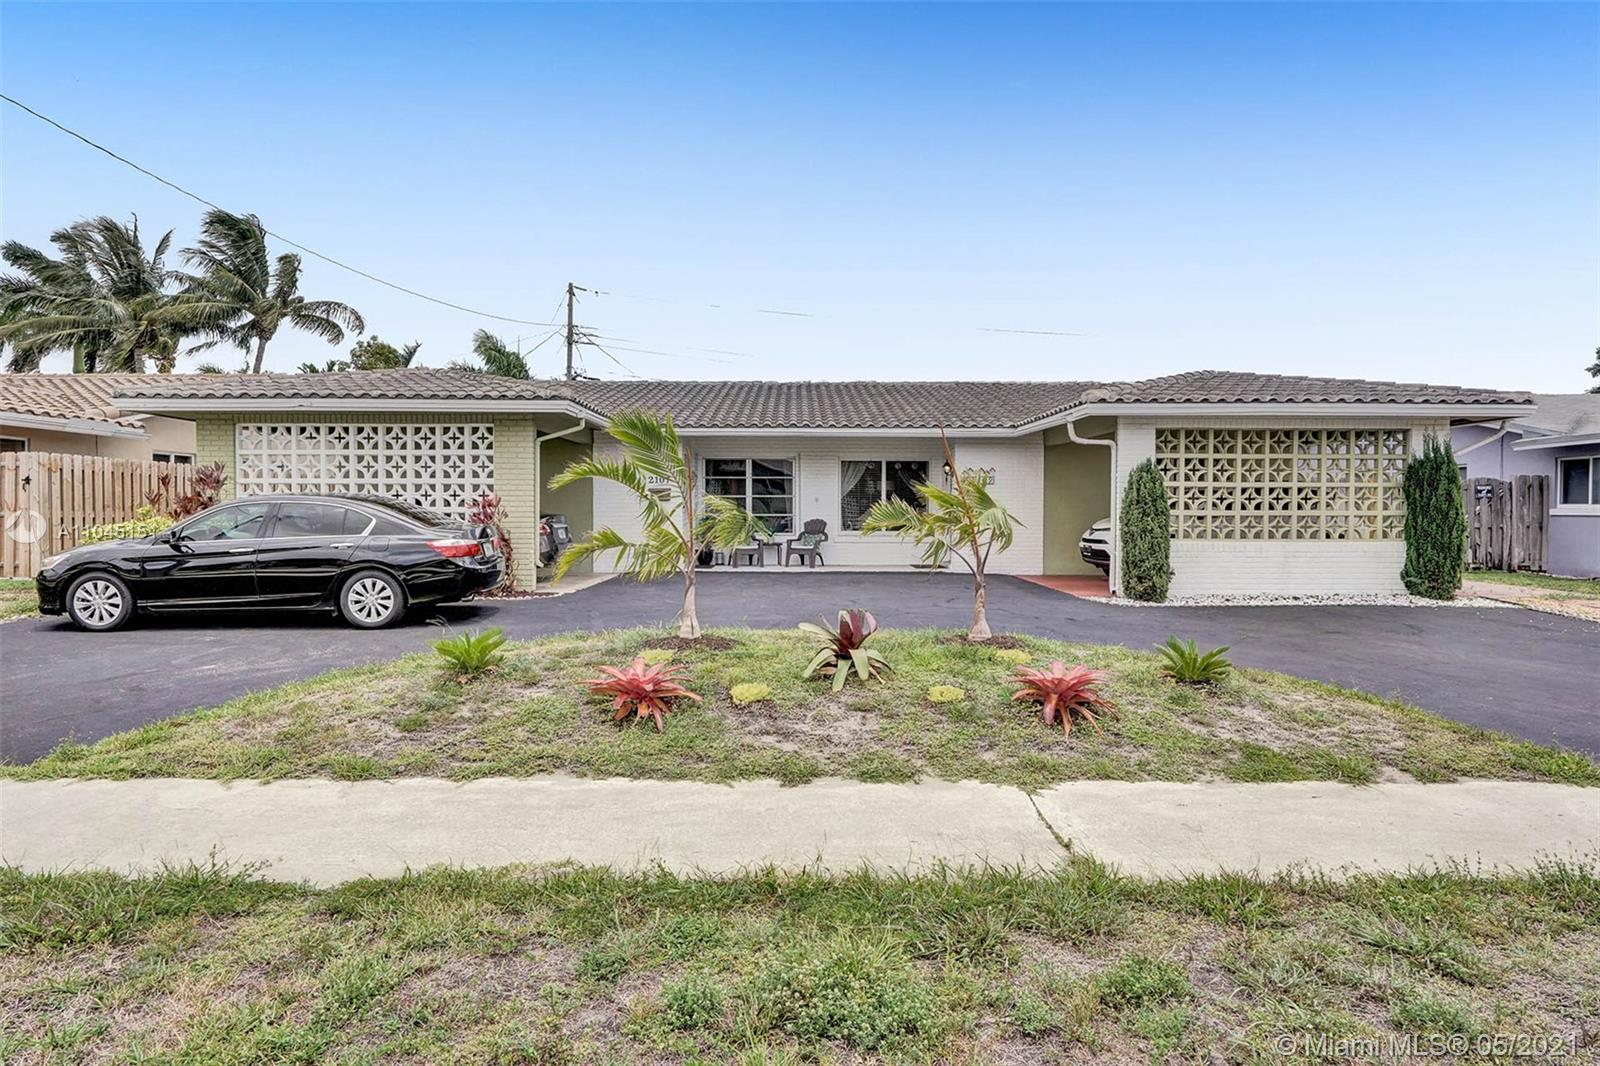 Welcome to this gorgeous two-bedroom, two-bathroom home located in the lovely community of Imperial